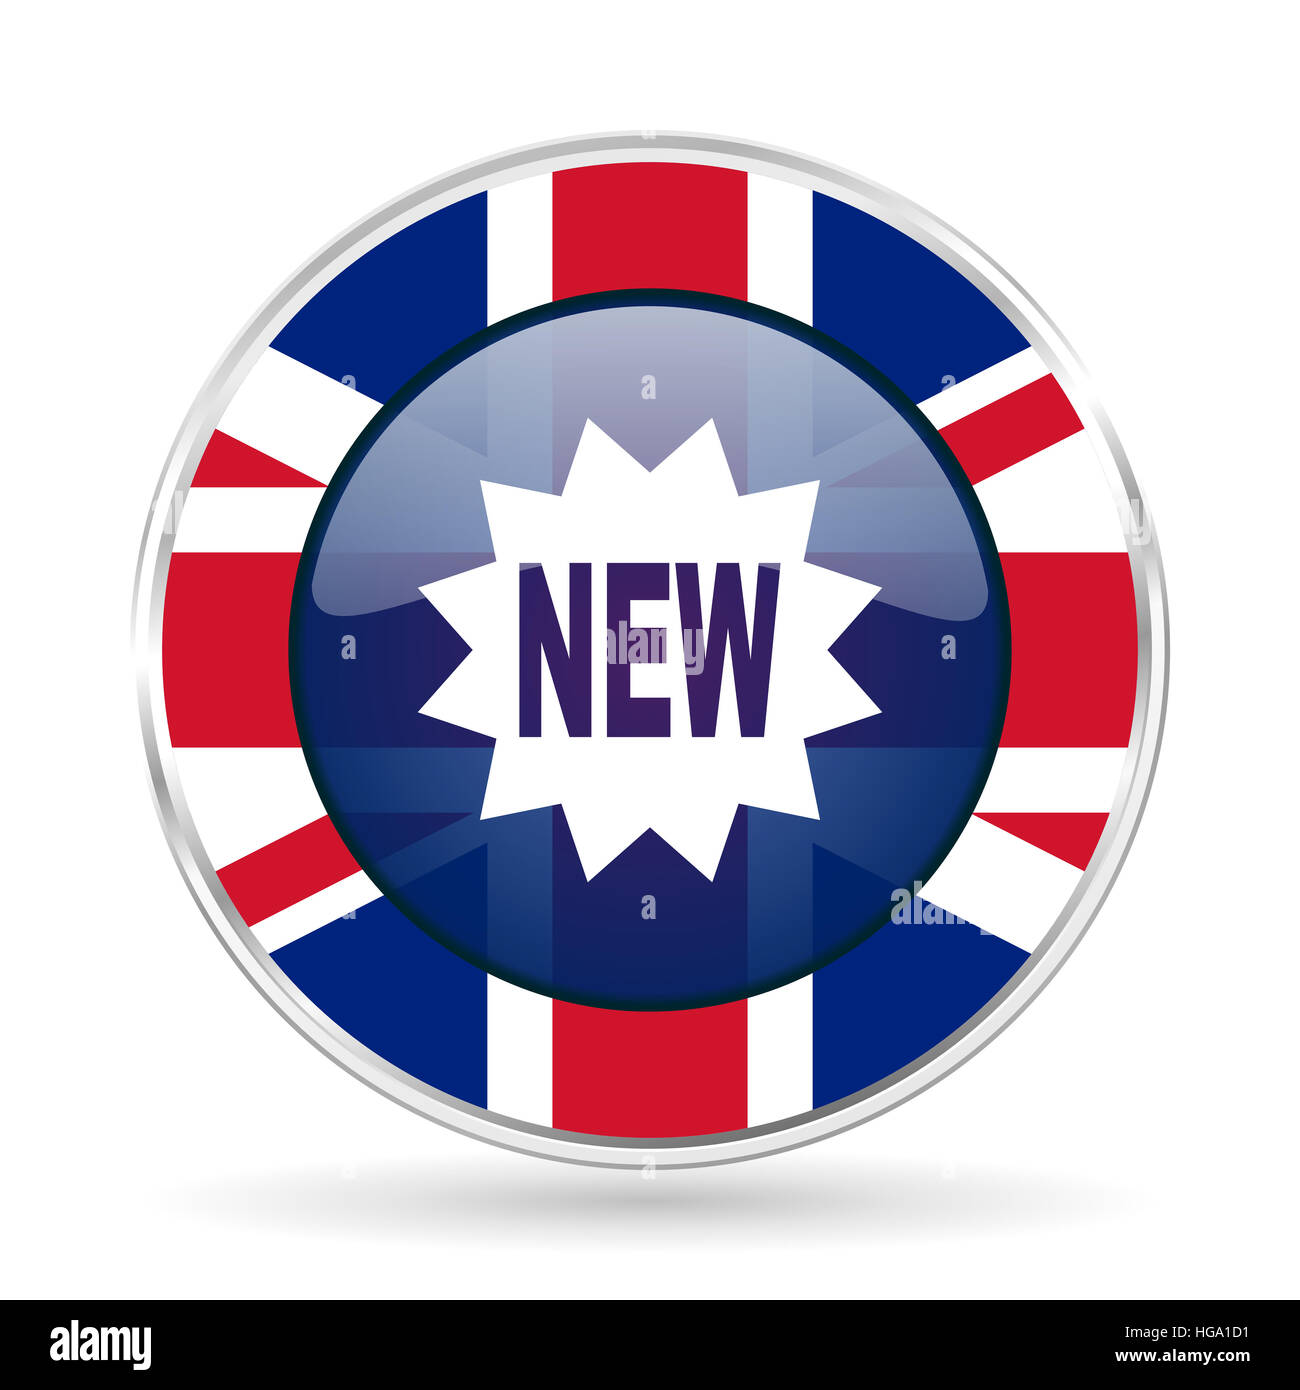 new british design icon - round silver metallic border button with Great Britain flag - Stock Image